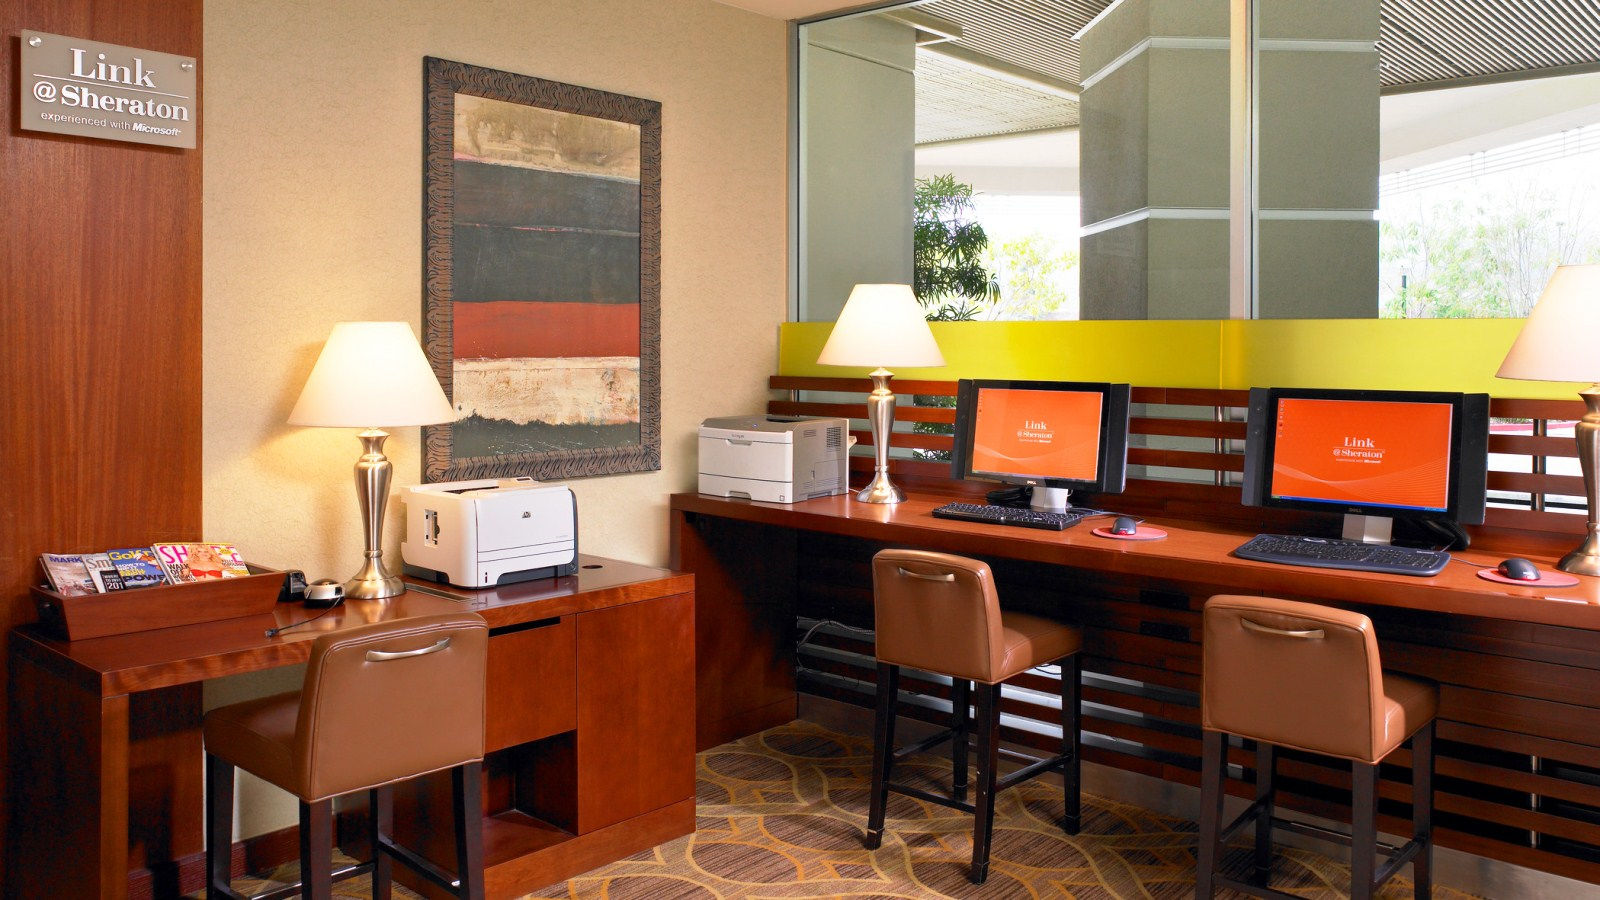 Hotel Amenities - Lobby Workstation